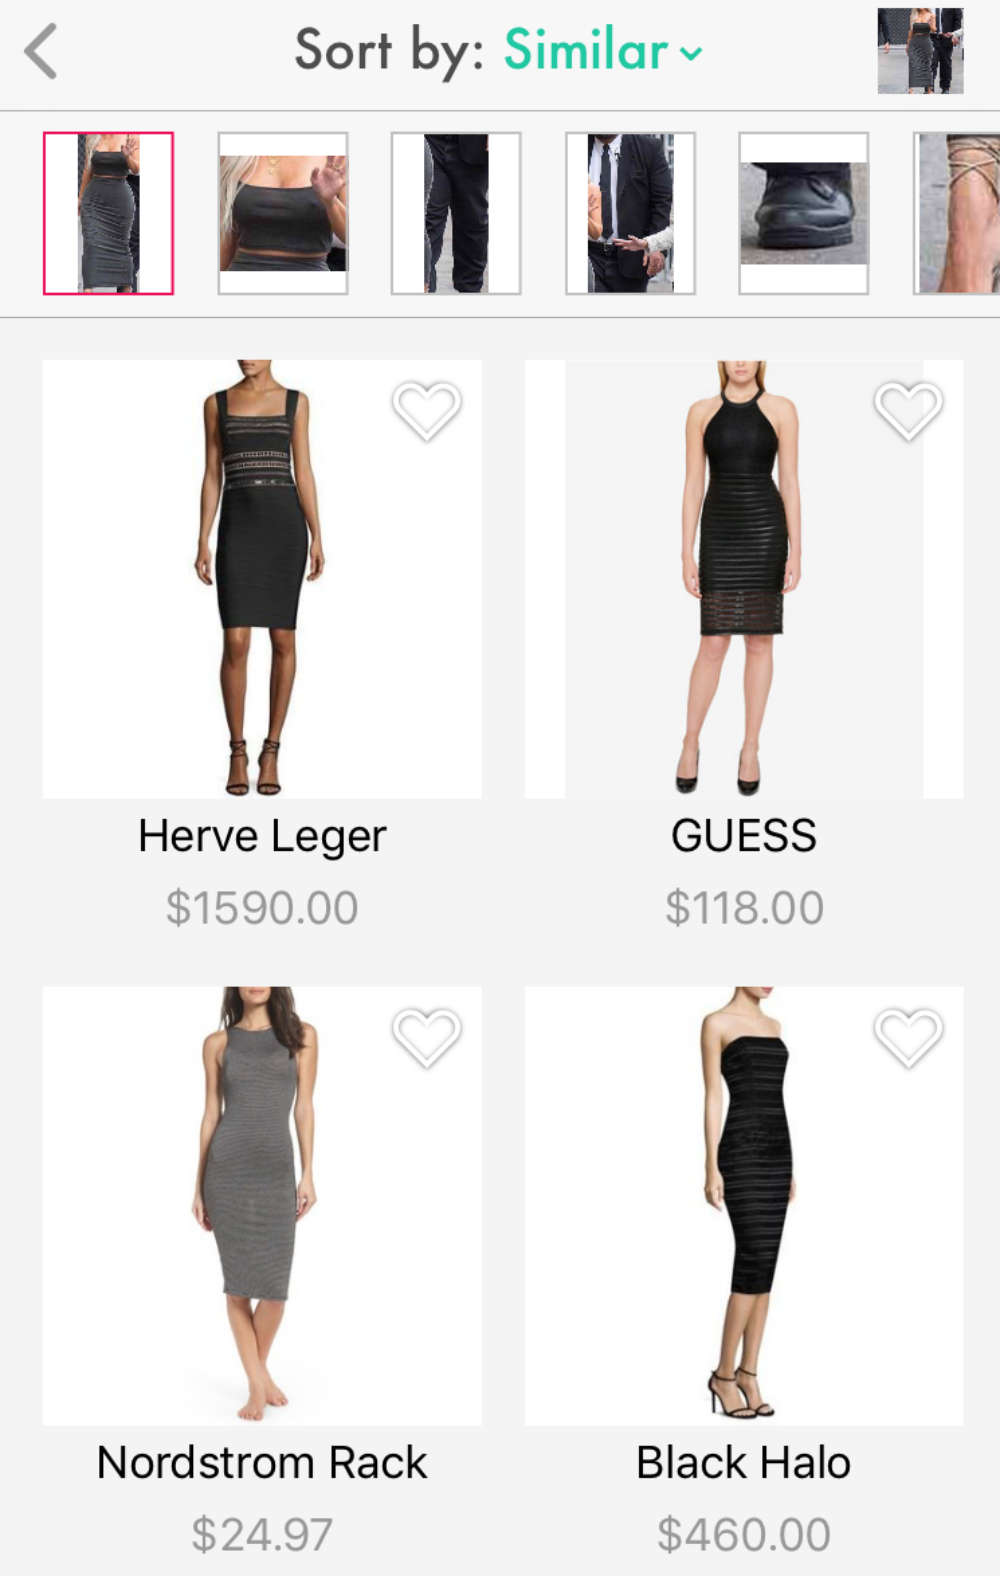 New Fashion Advertising Trends Your Apparel Business Should